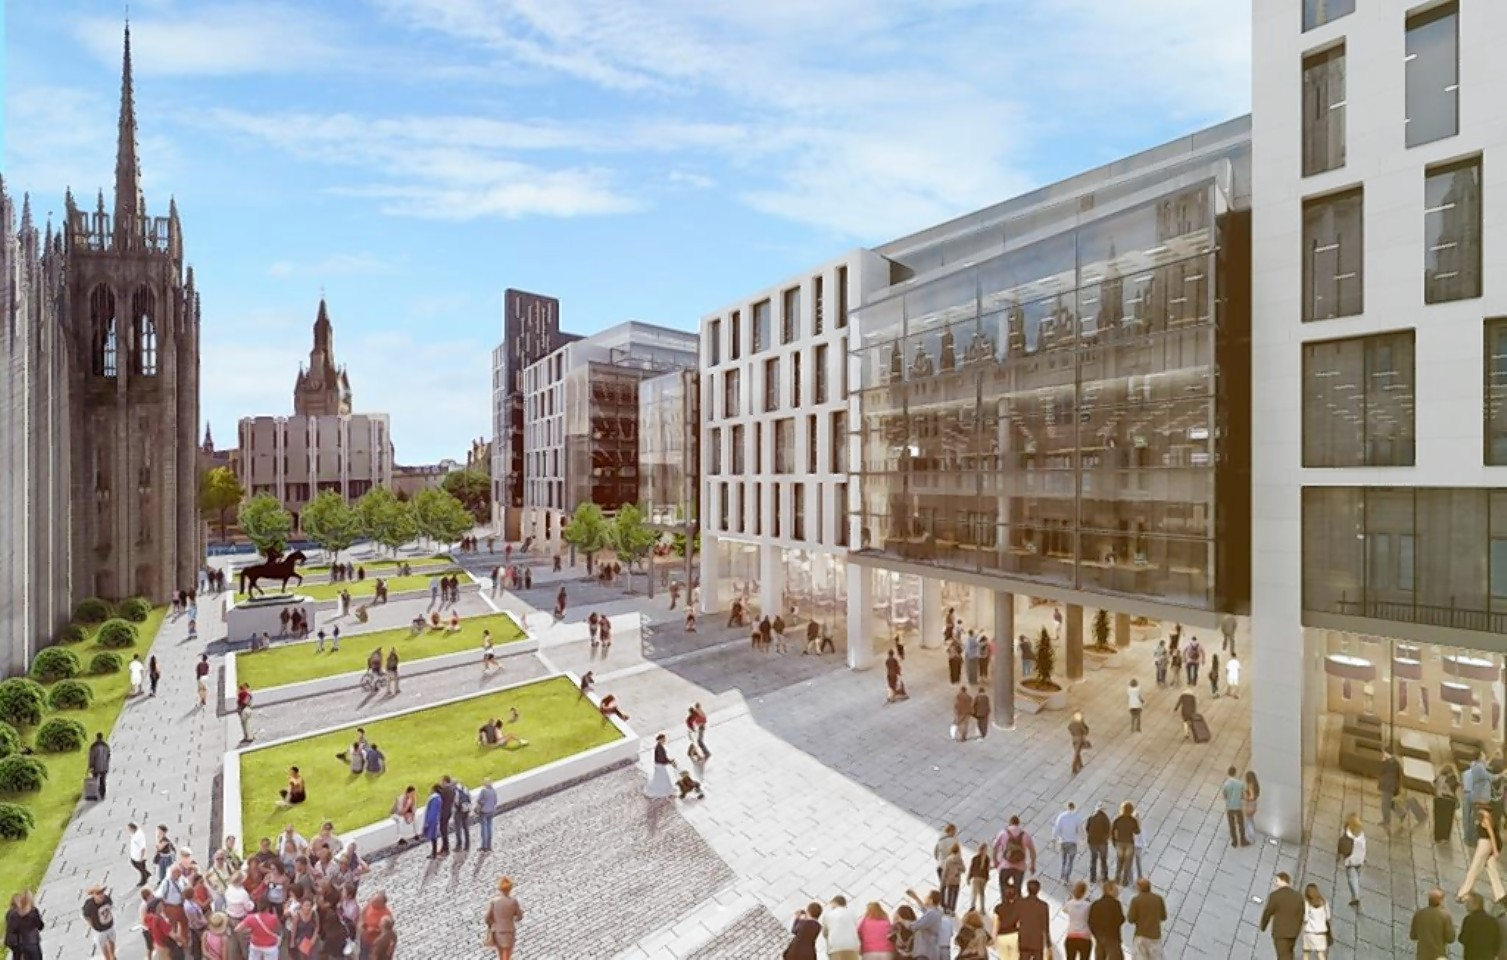 Nicola Sturgeon has urged people to use the ballot box to express their disapproval of the council's handling of the Marischal Square development.